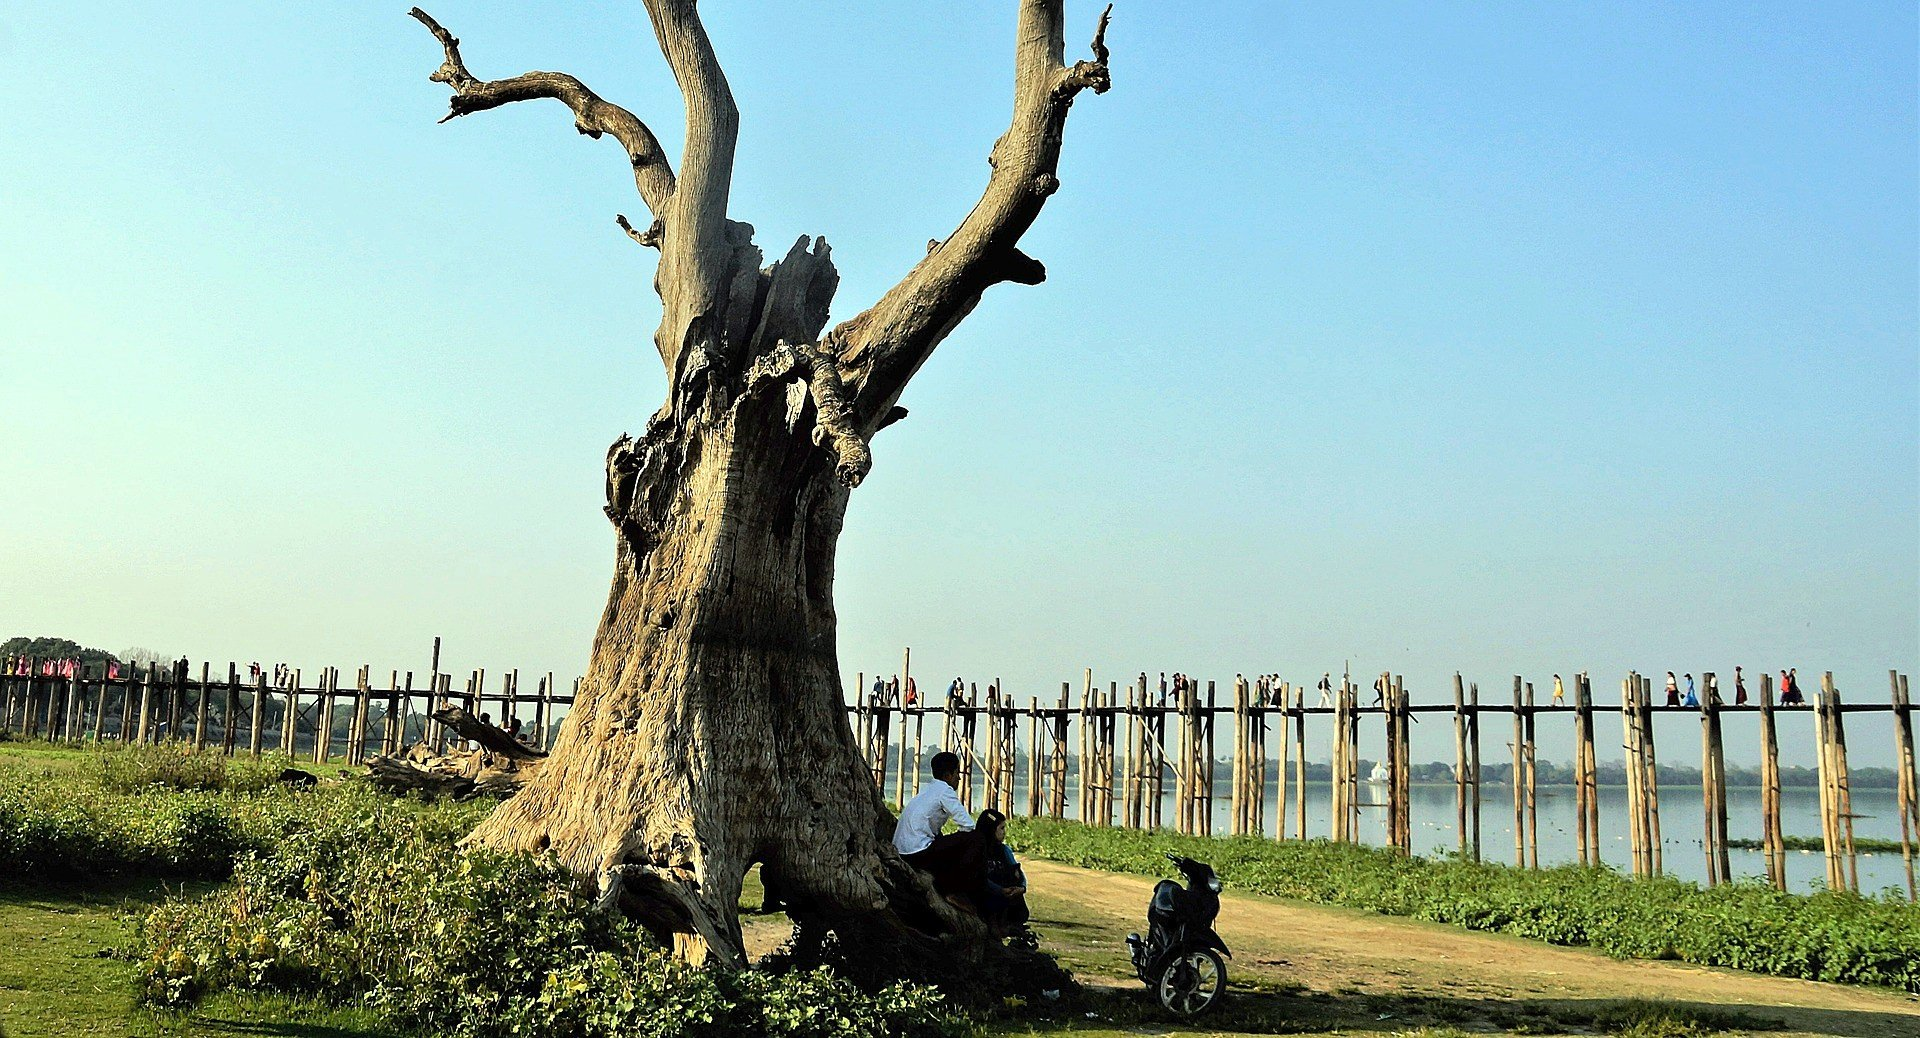 U Bein Bridge crosses Taungthaman Lake